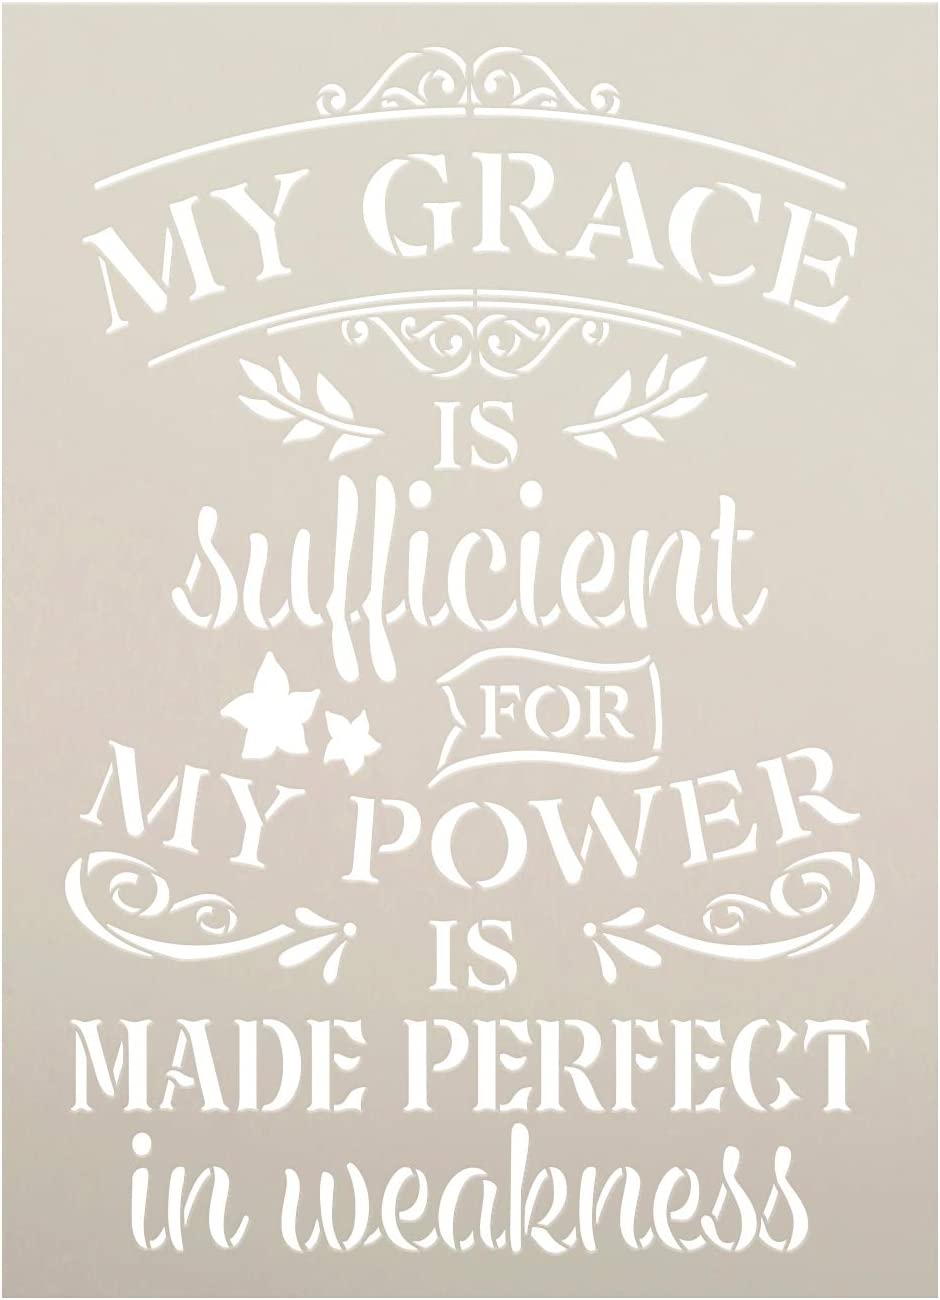 My Grace is Sufficient Stencil by StudioR12 | DIY Embellished Faith Home Decor | Paint Inspirational Wood Signs | Select Size (18 x 13 inch)